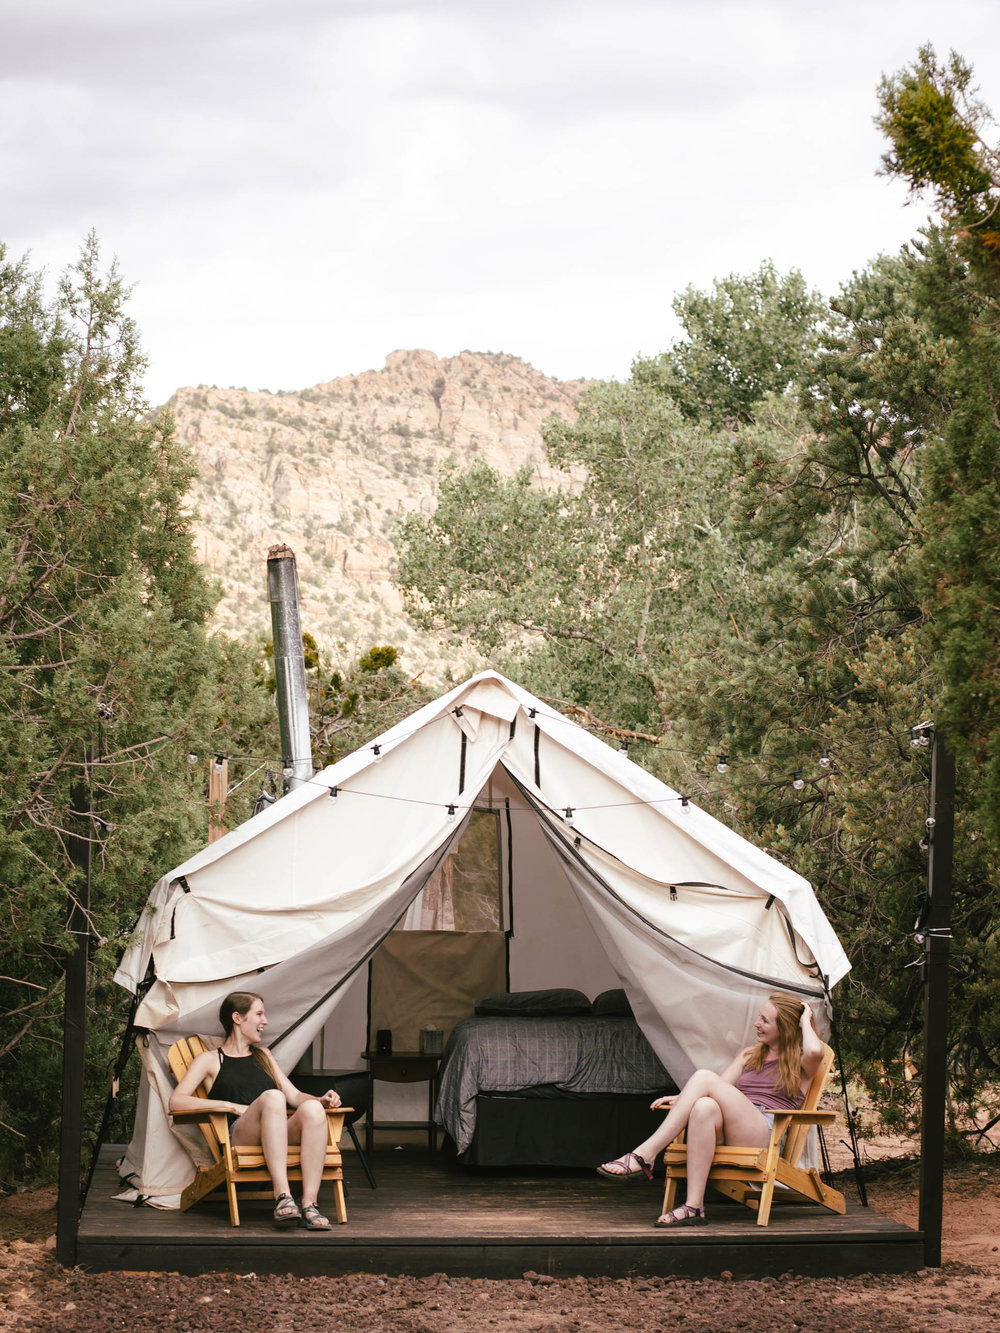 This glamping site is located in Hildale, near Zion National Park